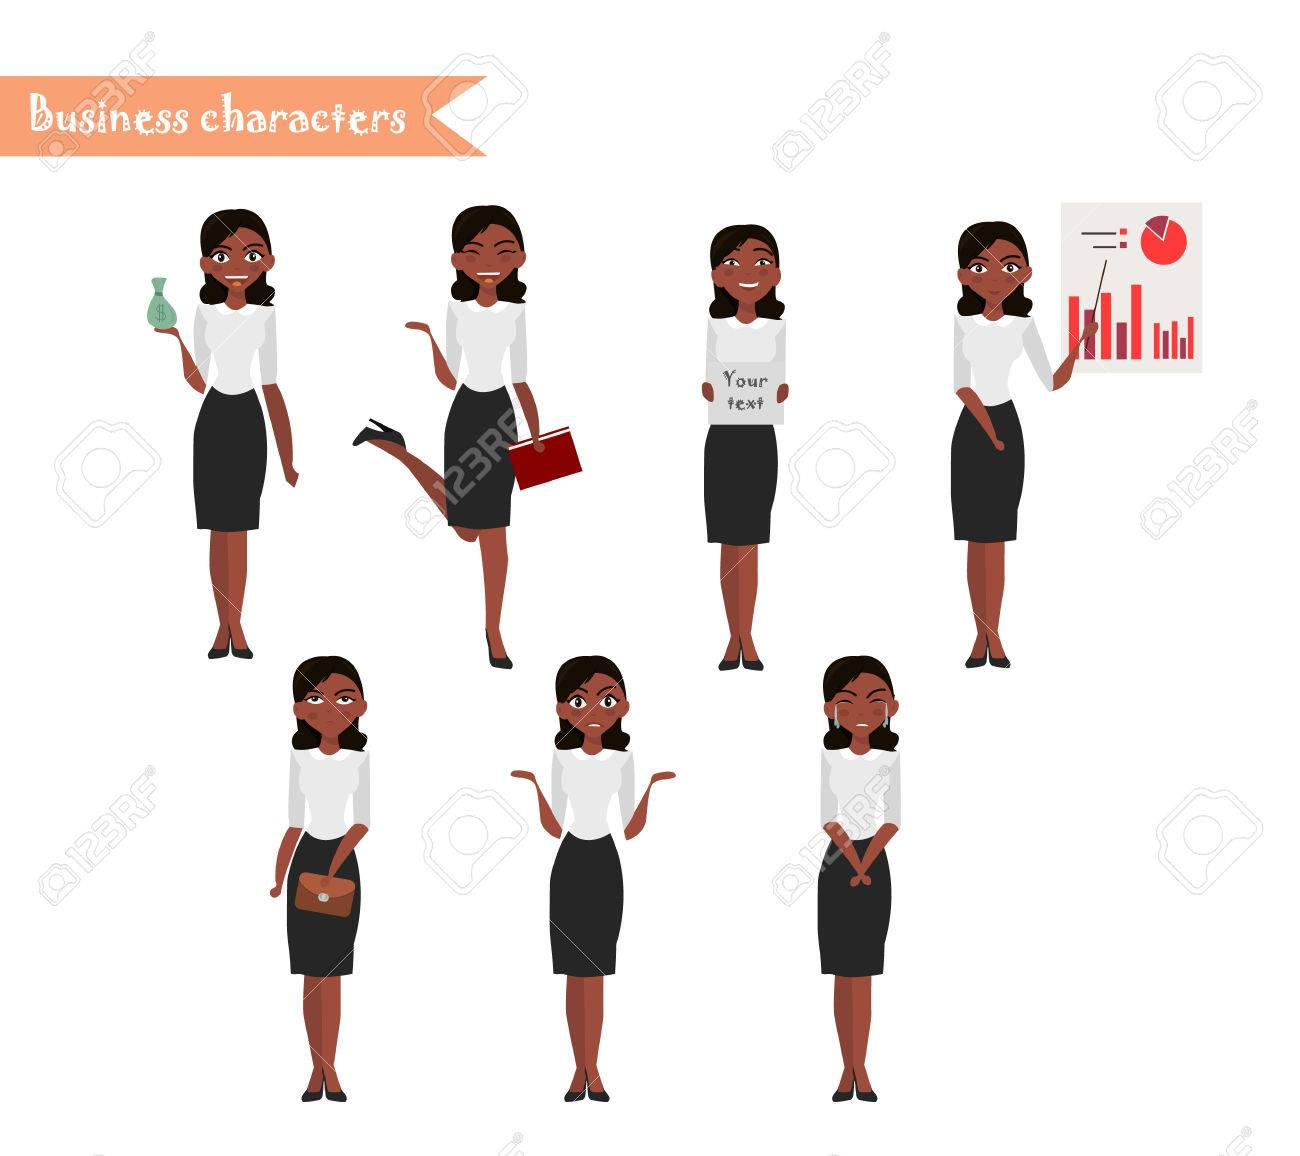 Funny African American Characters Wiring Diagrams Board Makeriso Pcb Makerprinted Circuit Product On Character For Scenes Office Woman Cartoon Rh 123rf Com Jokes Really Art